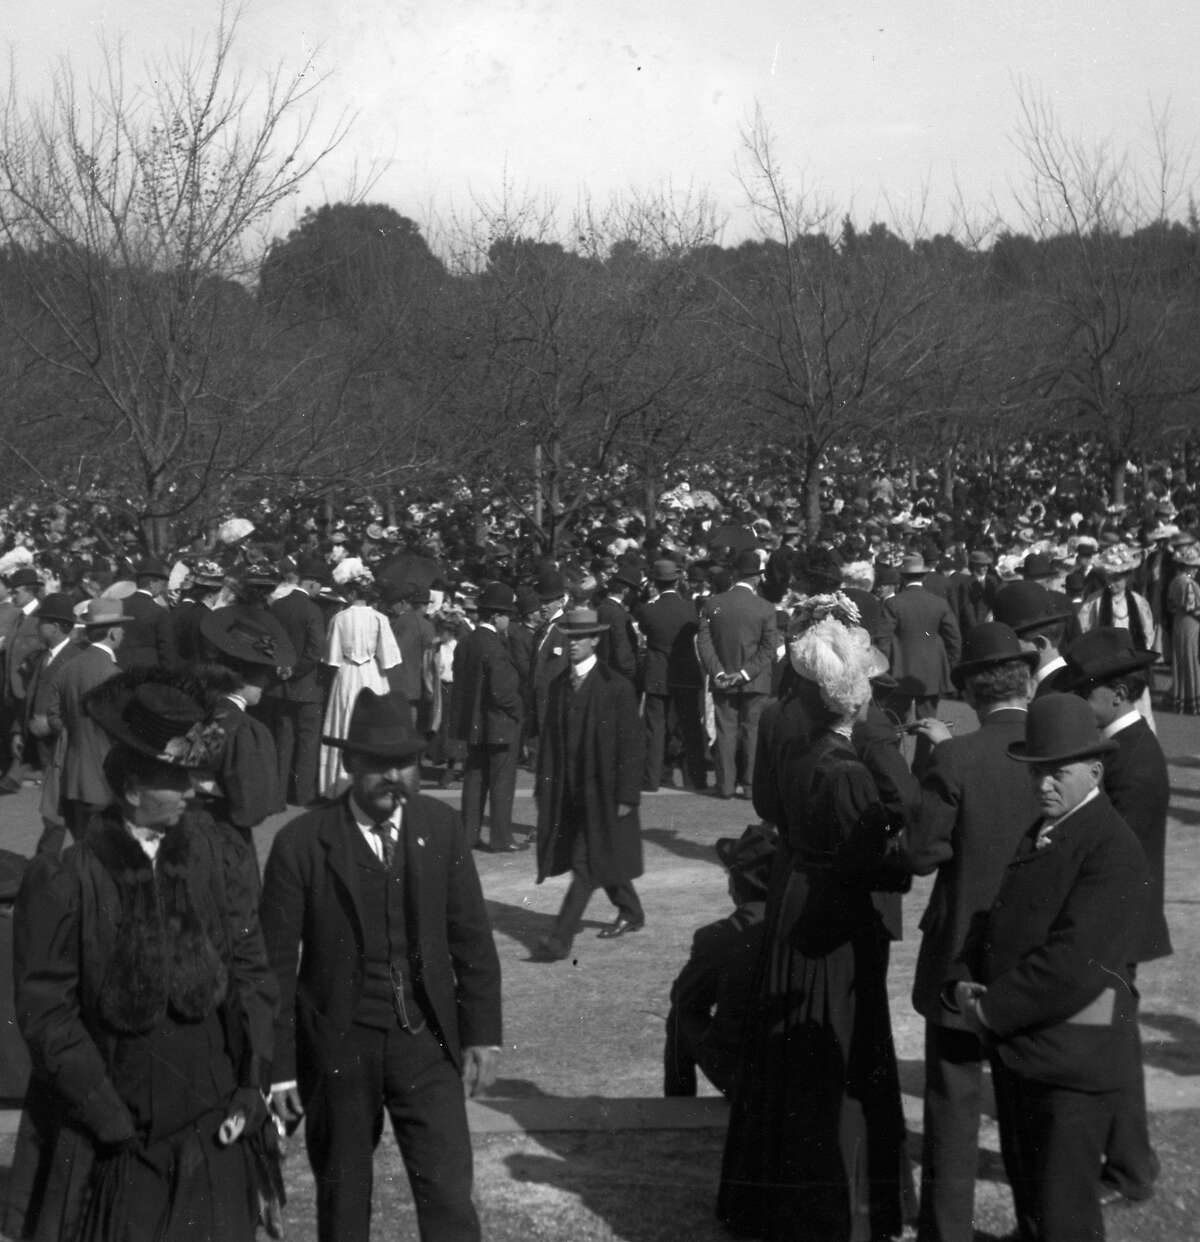 A crowd gathers in Golden Gate Park sometime after the 1906 earthquake and fire.